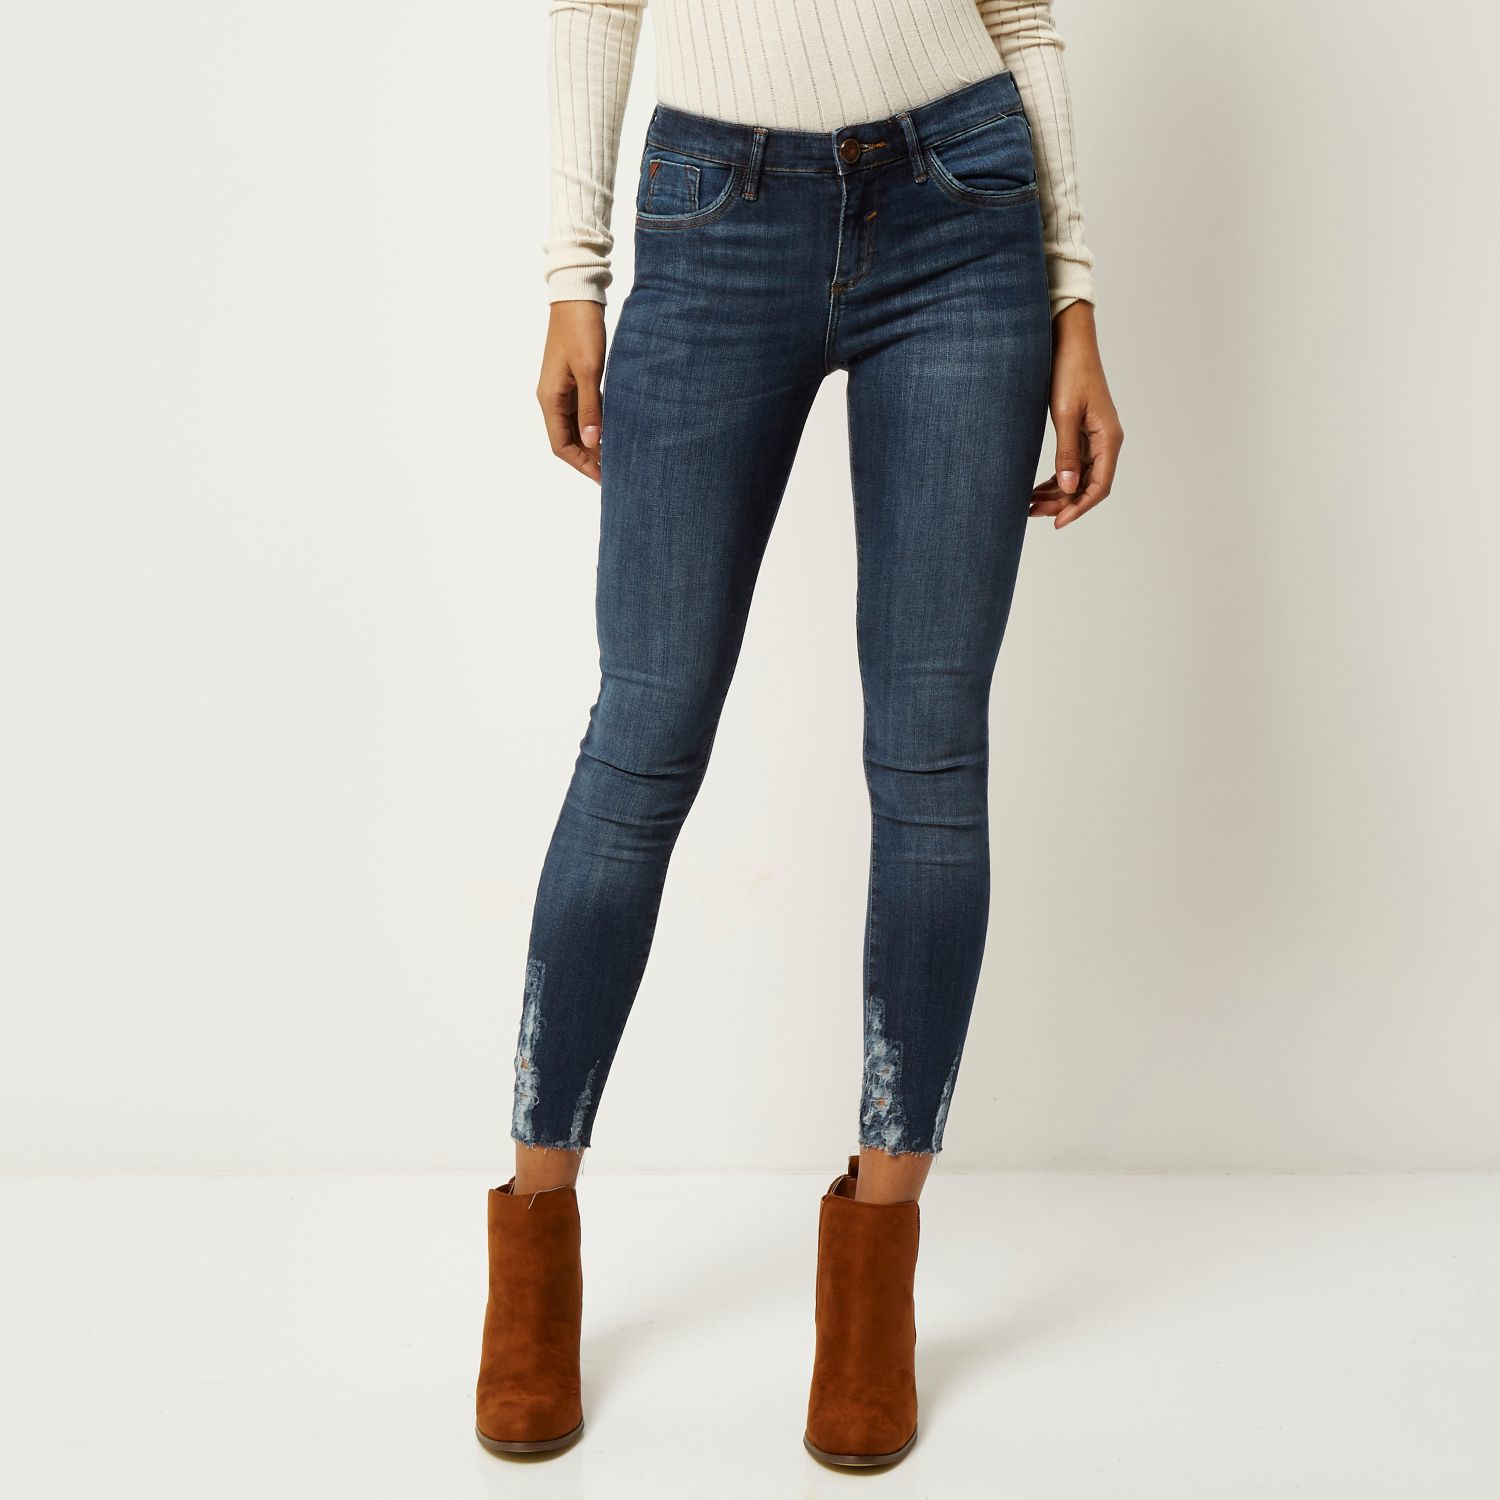 Dark Wash Ripped Jeans - Jeans Am